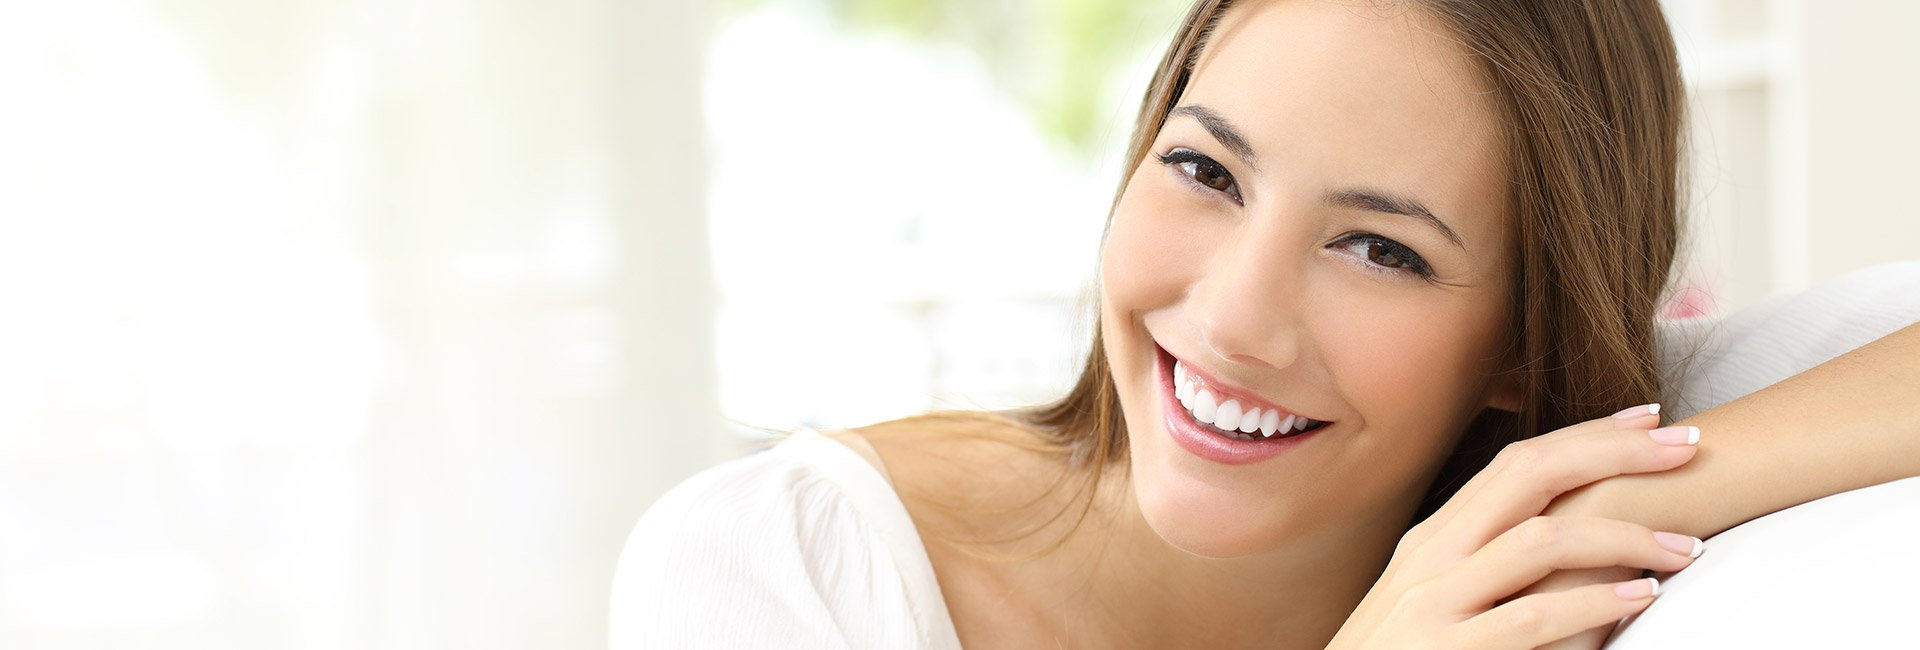 Cosmetic Dentist Farmington Hills - Banner Image 1